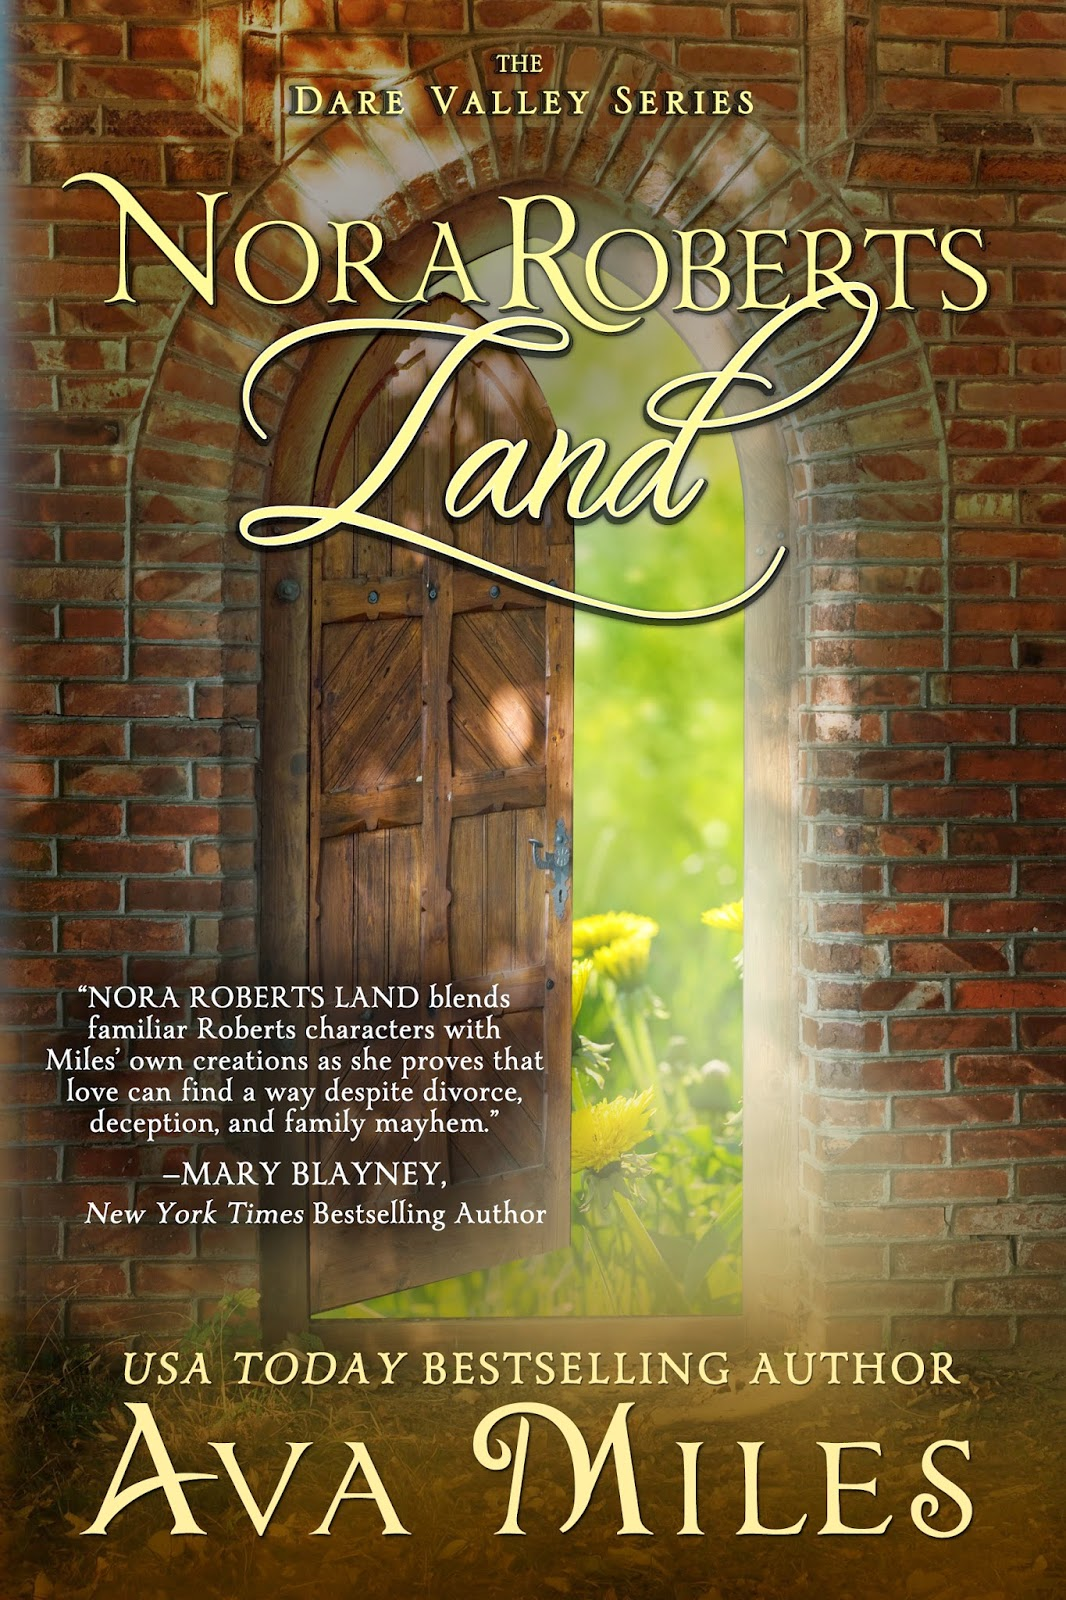 http://www.amazon.com/Nora-Roberts-Land-Valley-Series-ebook/dp/B00DP64BN8/ref=sr_1_1?ie=UTF8&qid=1395494741&sr=8-1&keywords=nora+roberts+land